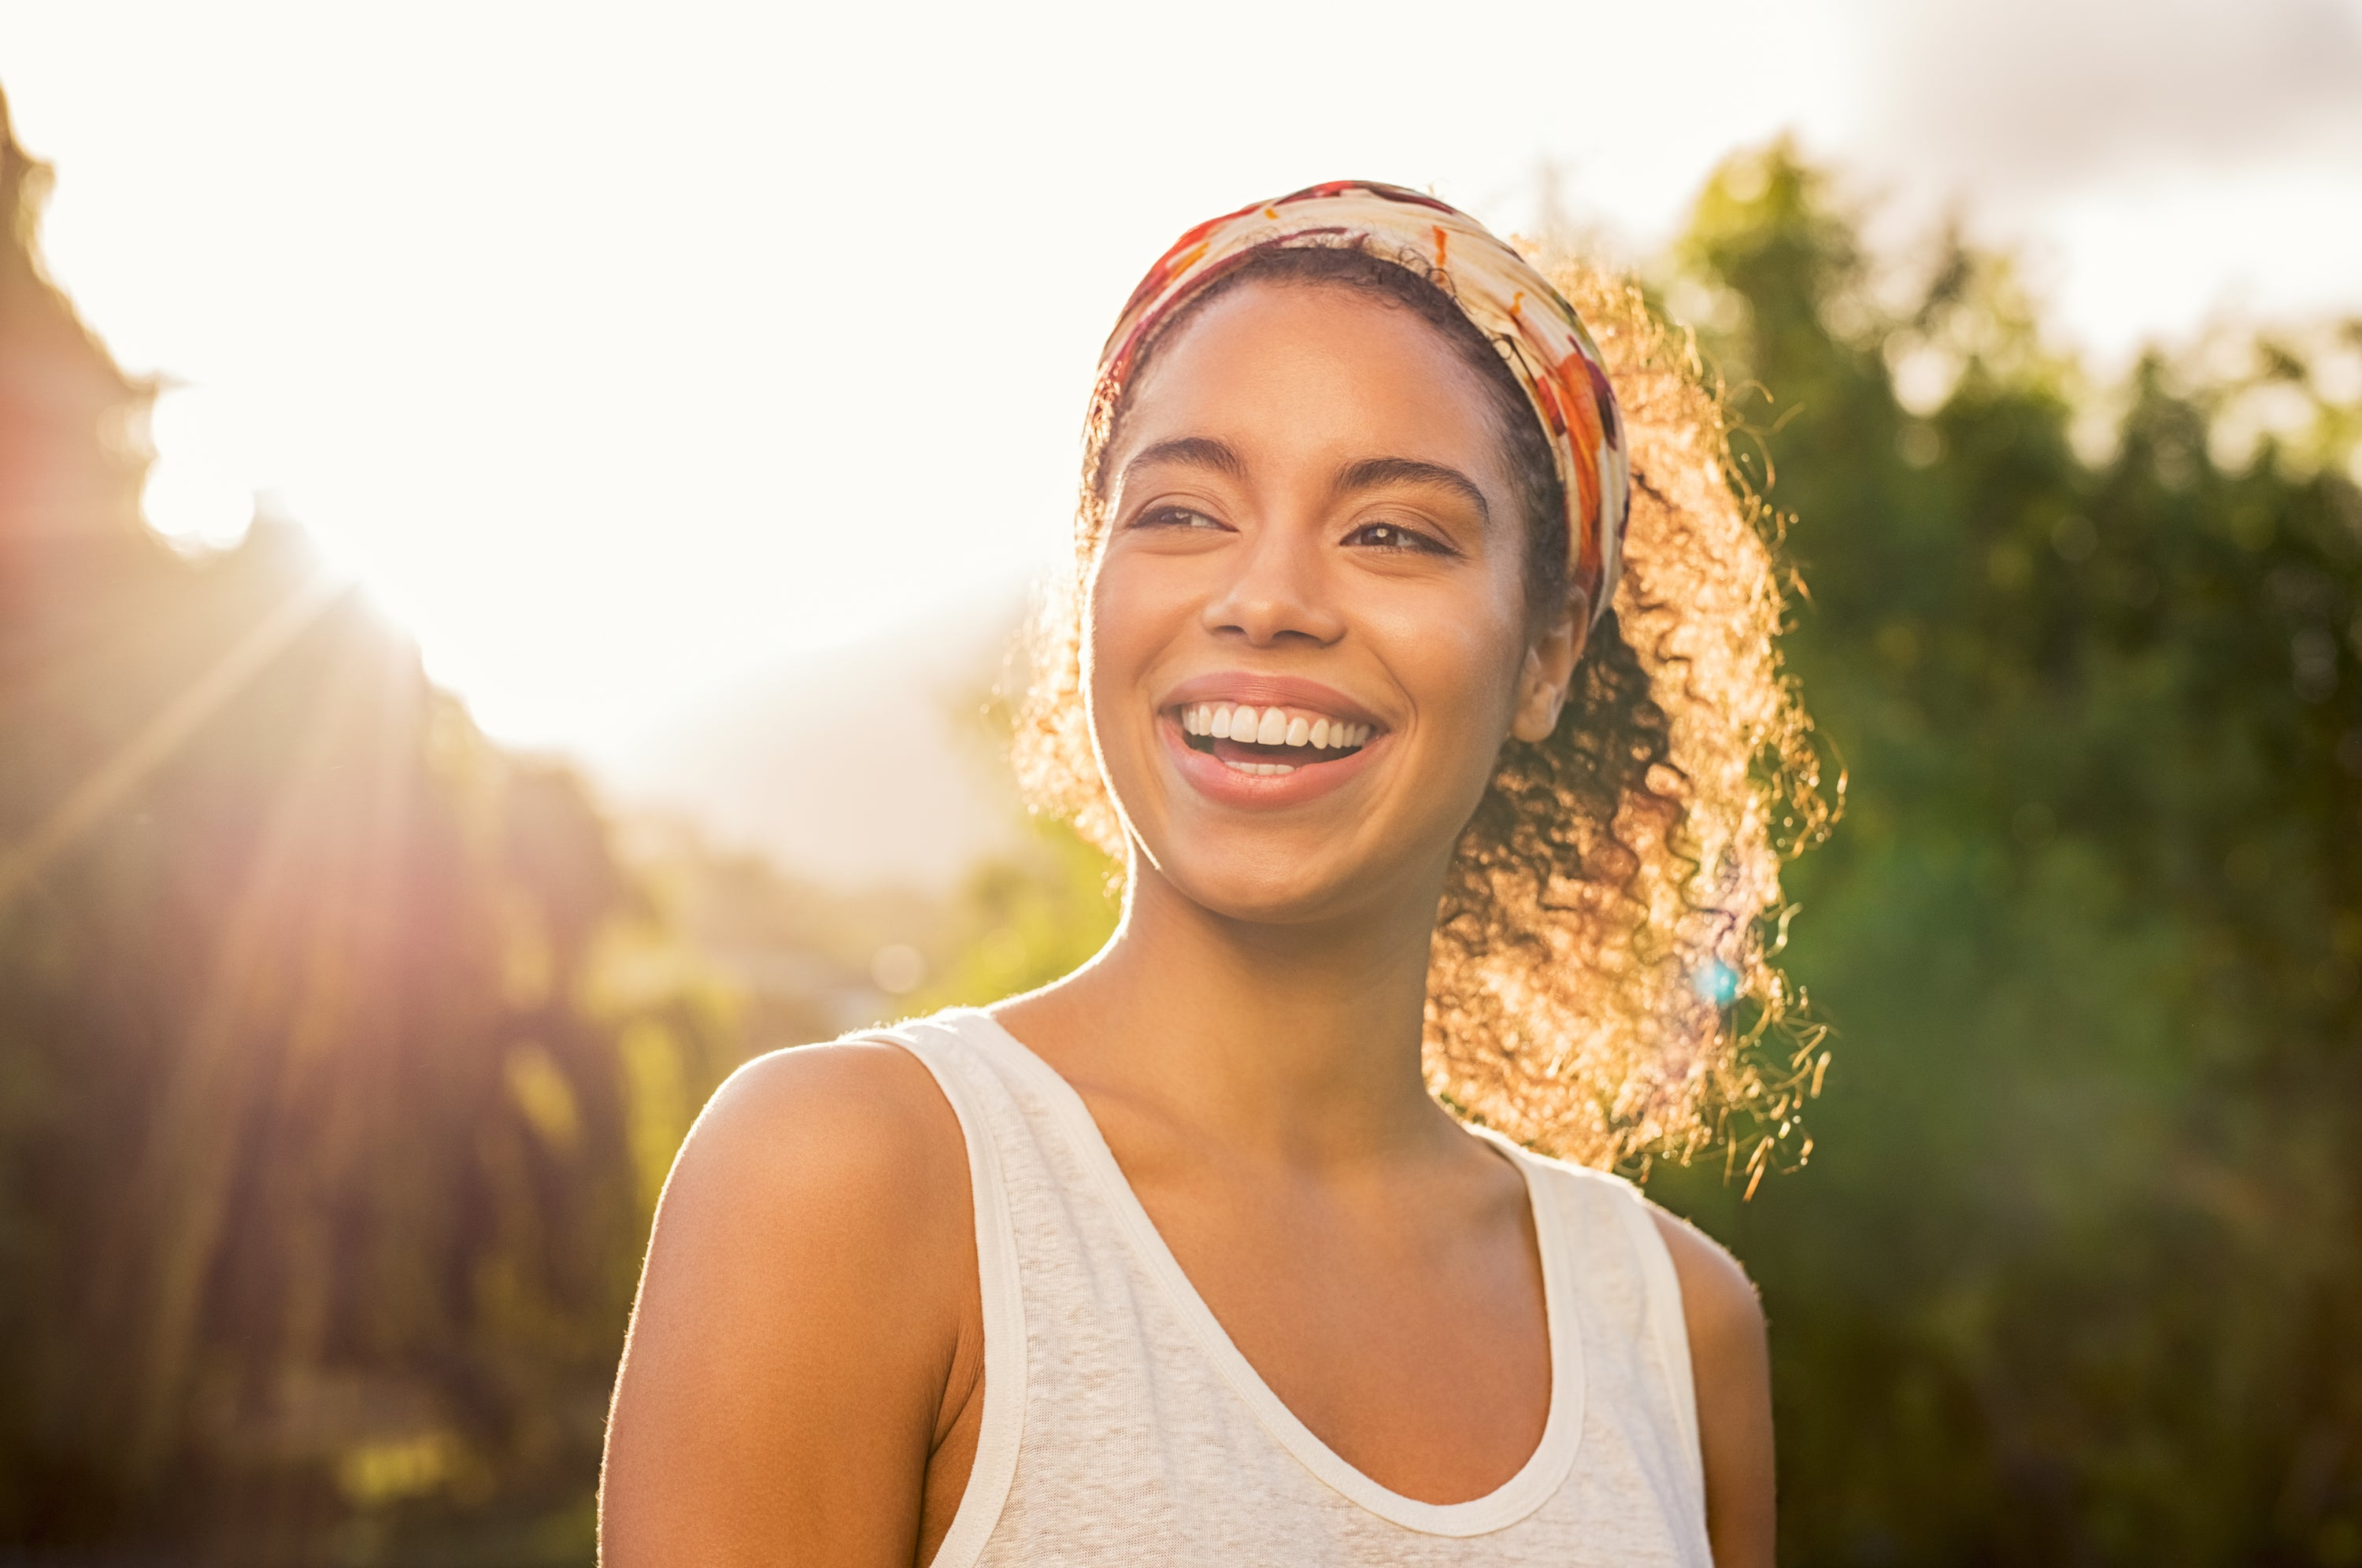 smiling girl with curly hair and headband in sunshine